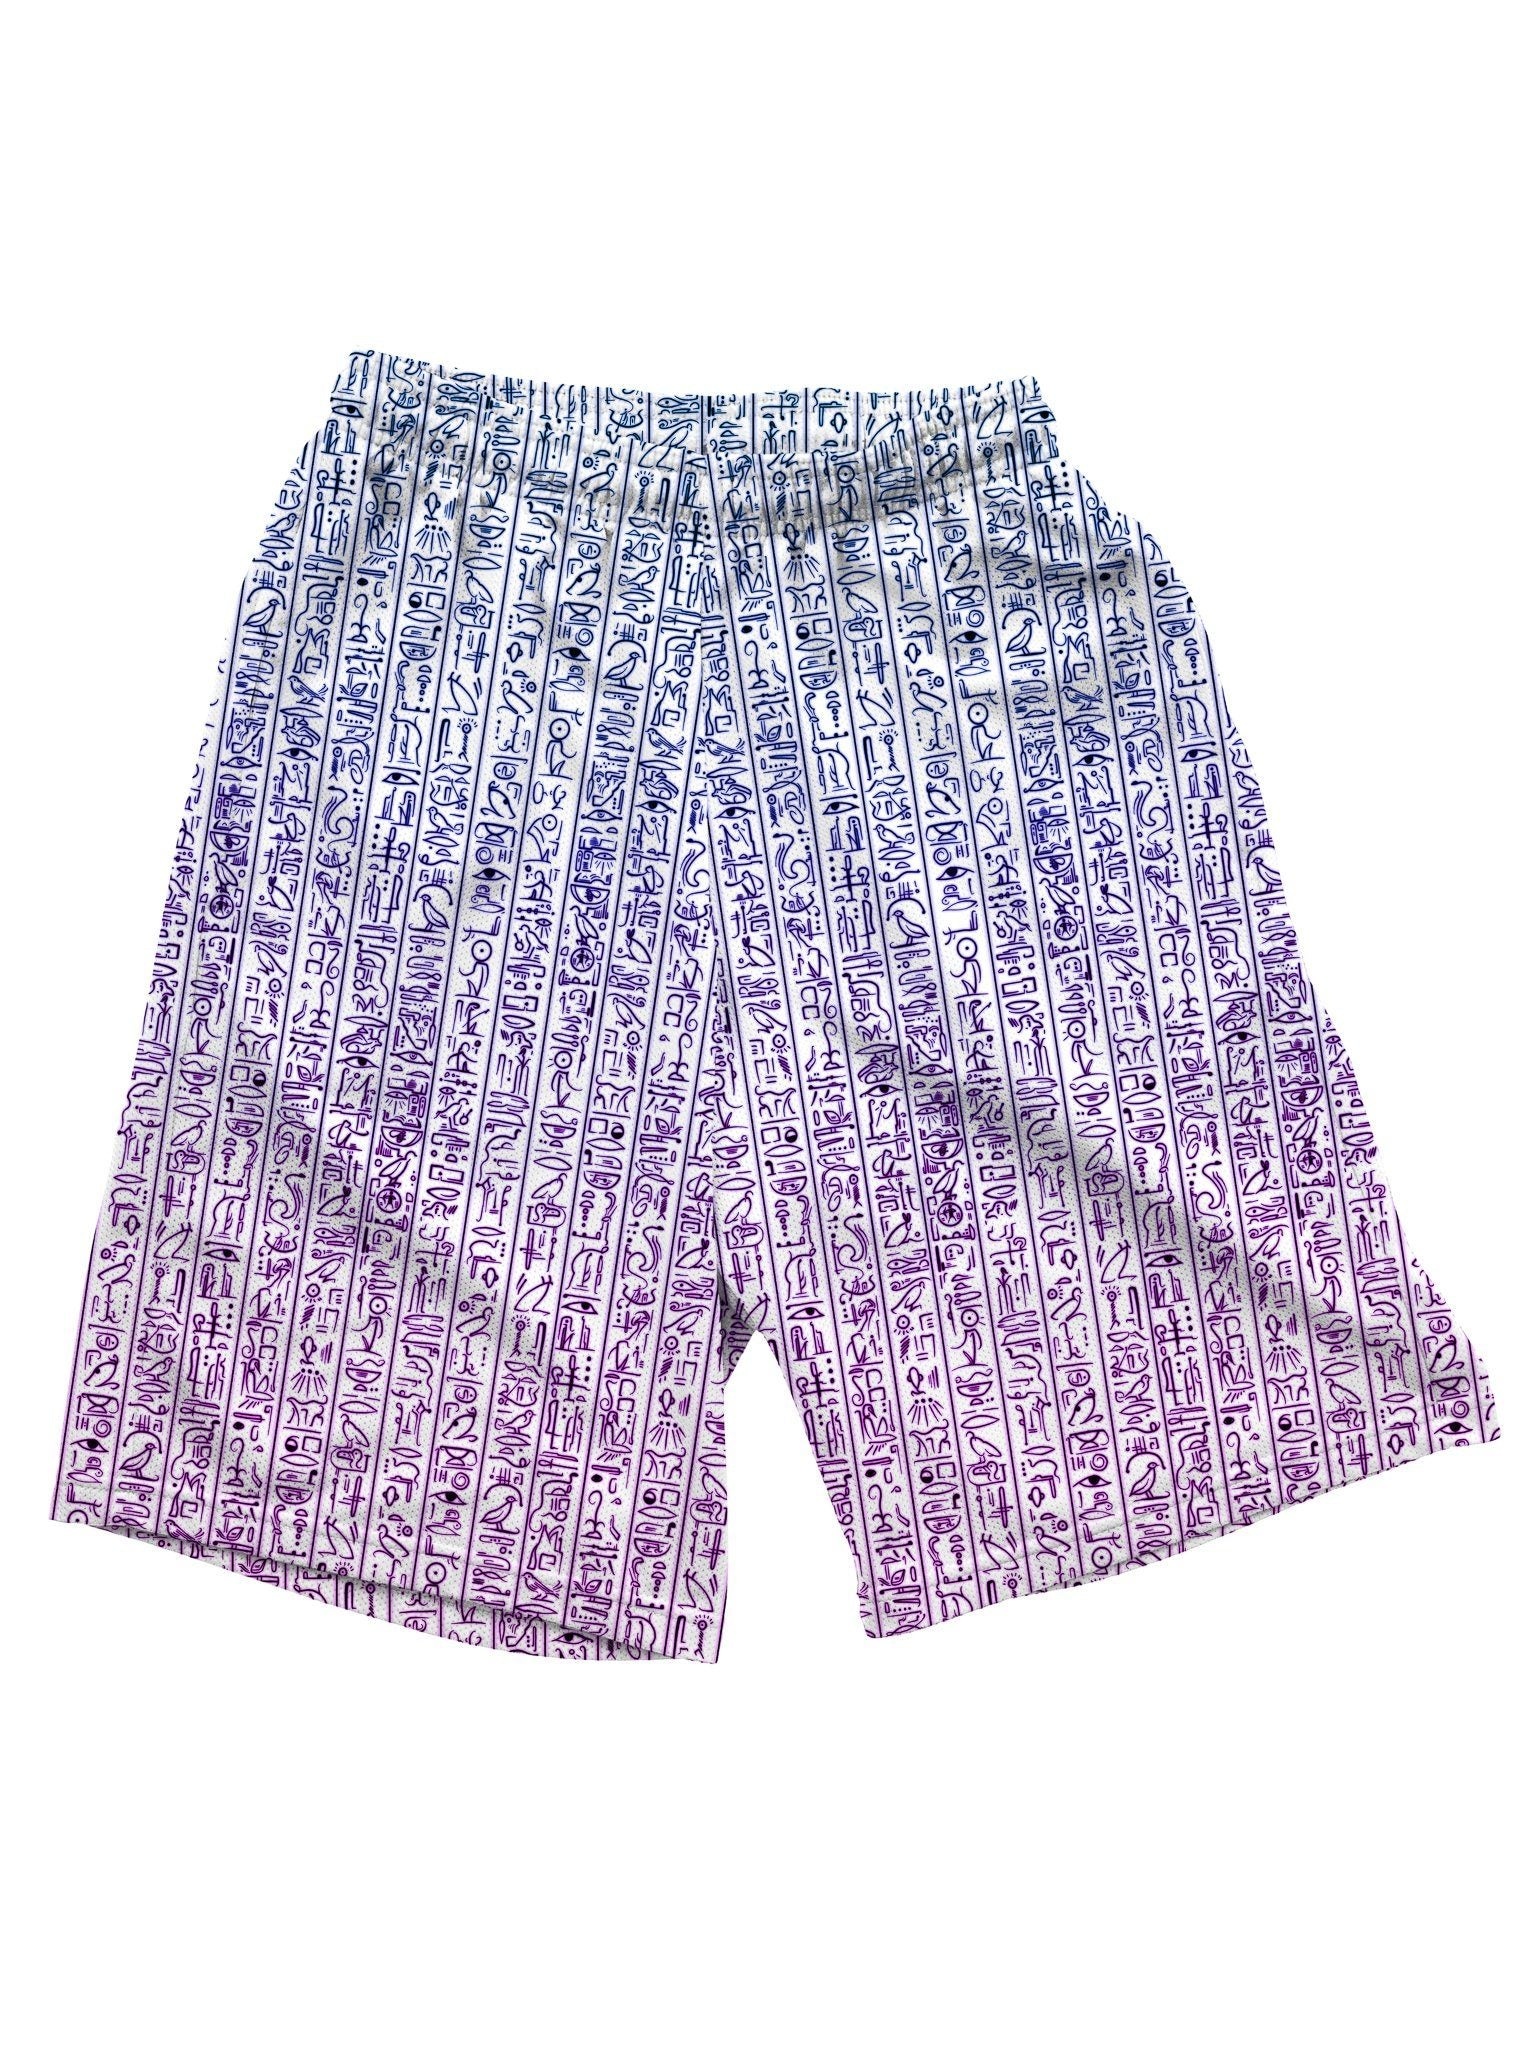 Egyptian Glyphs (Magenta) Shorts Mens Shorts Electro Threads